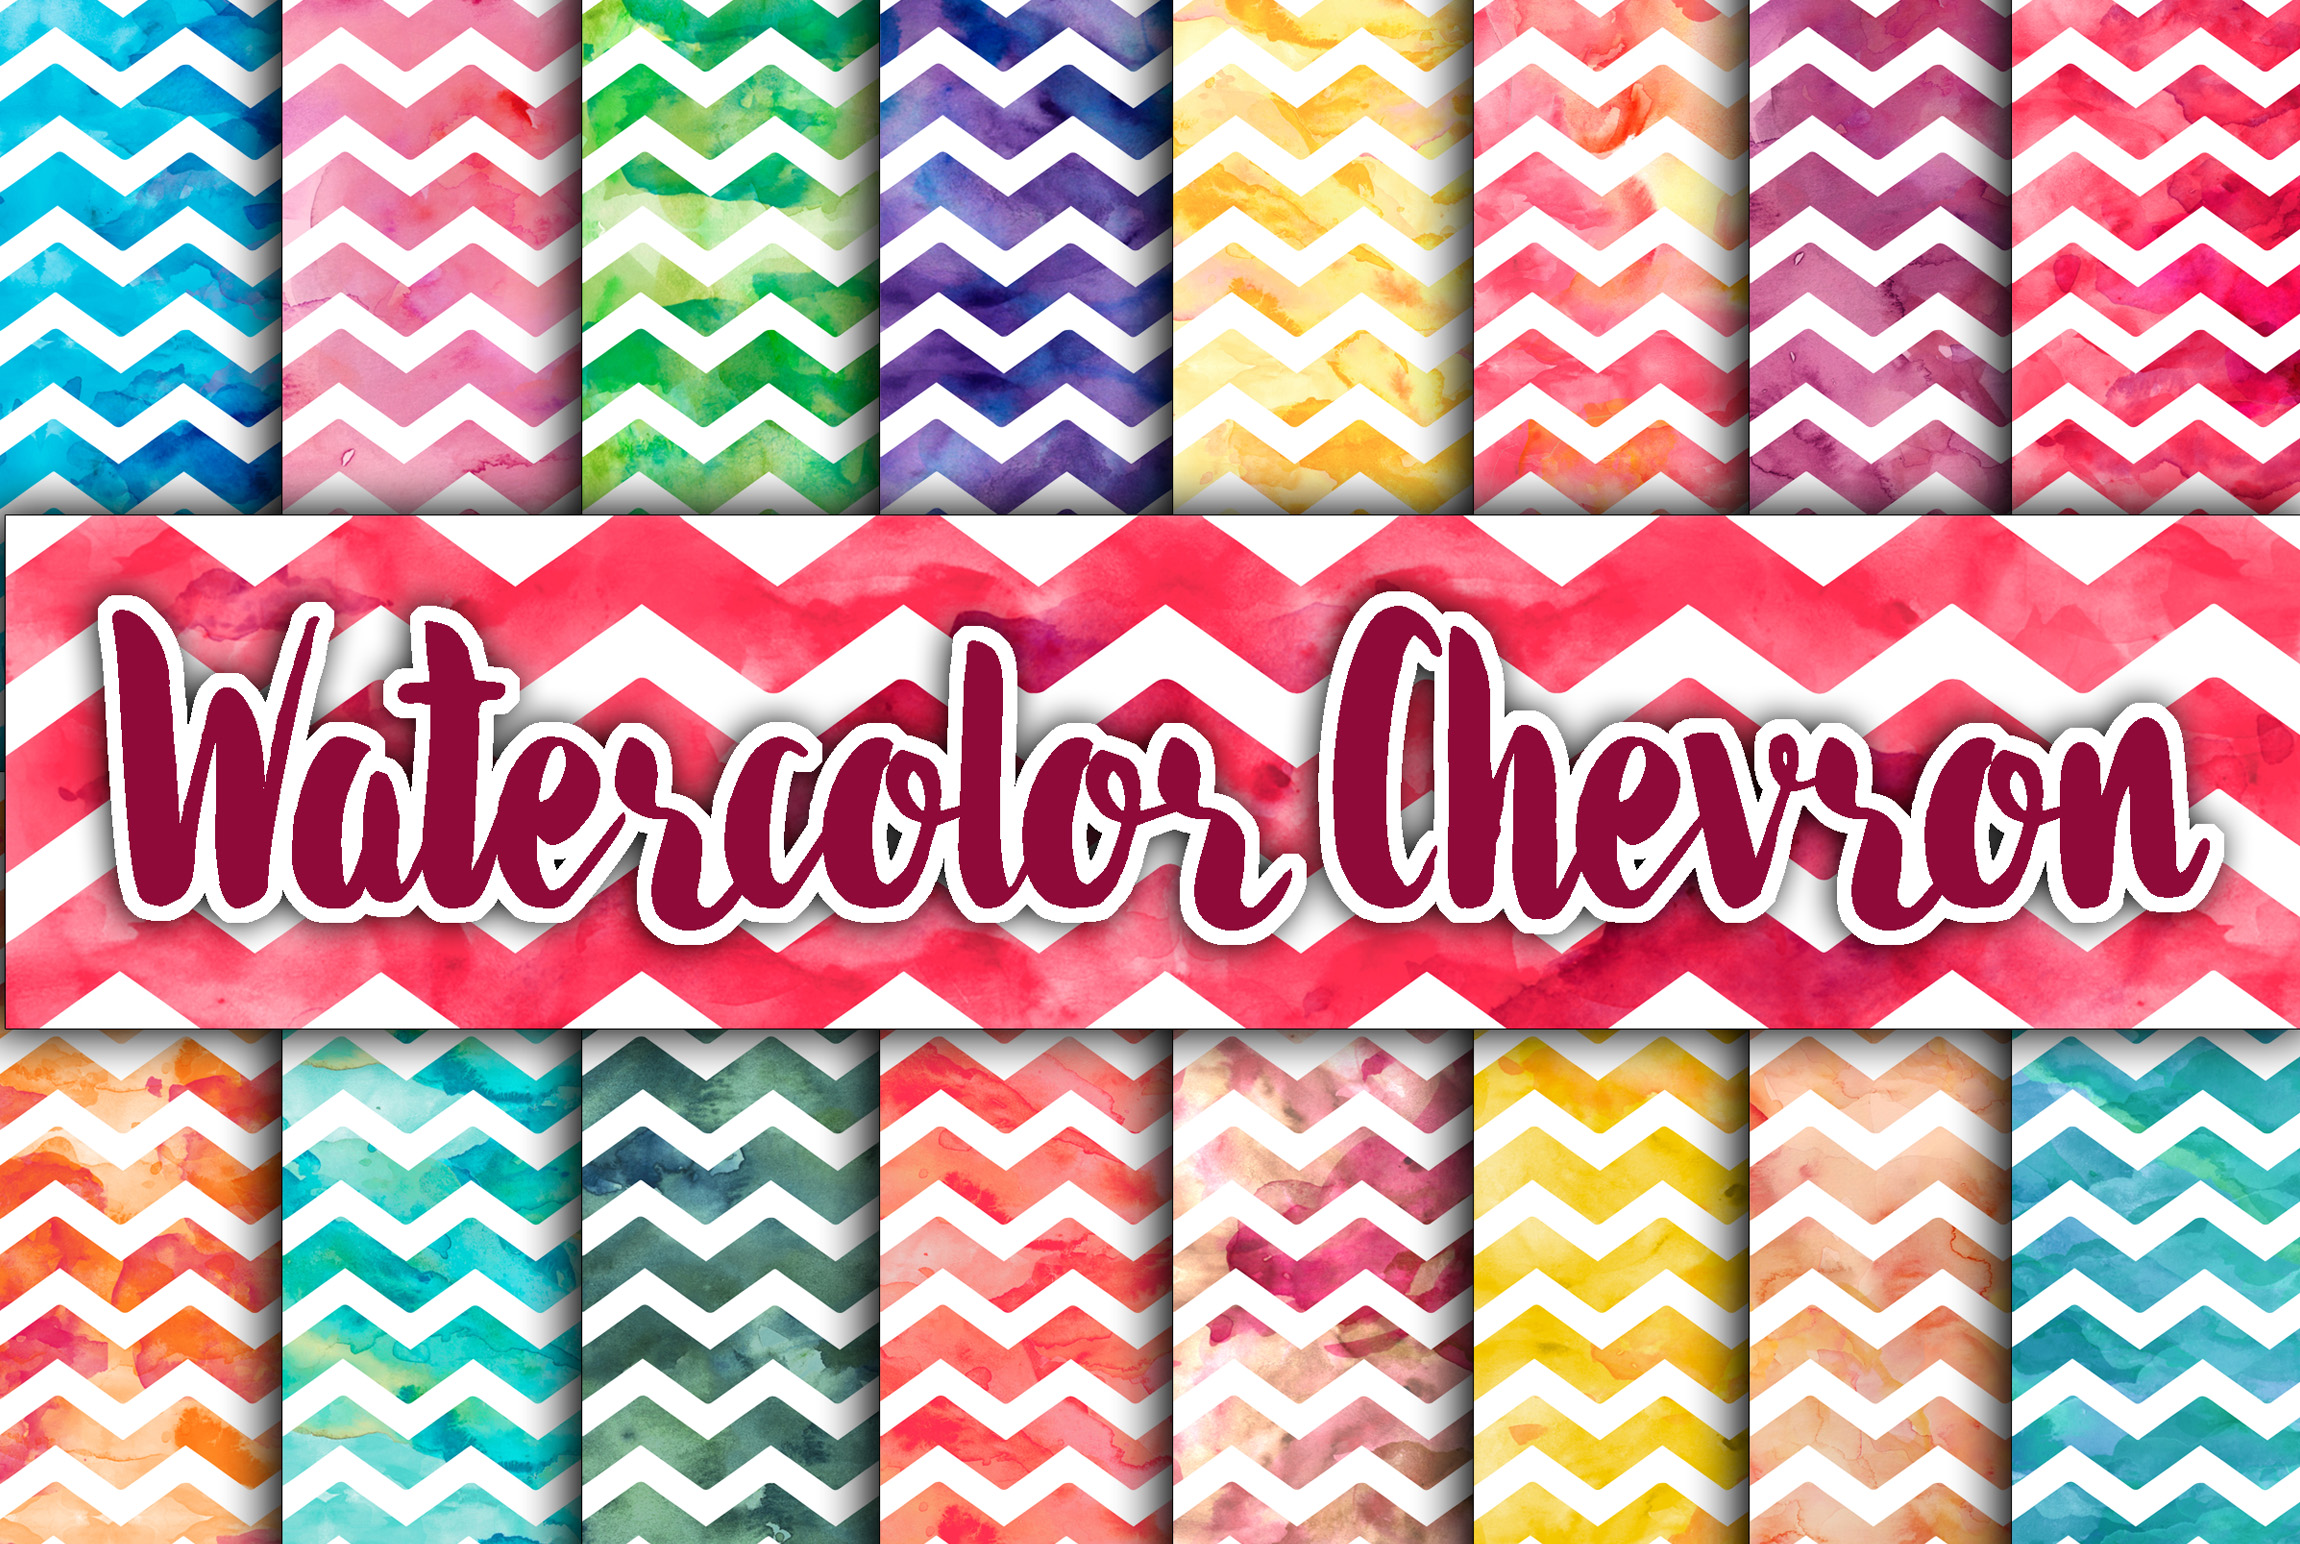 Watercolor Chevron Digital Paper Textures Graphic Backgrounds By oldmarketdesigns